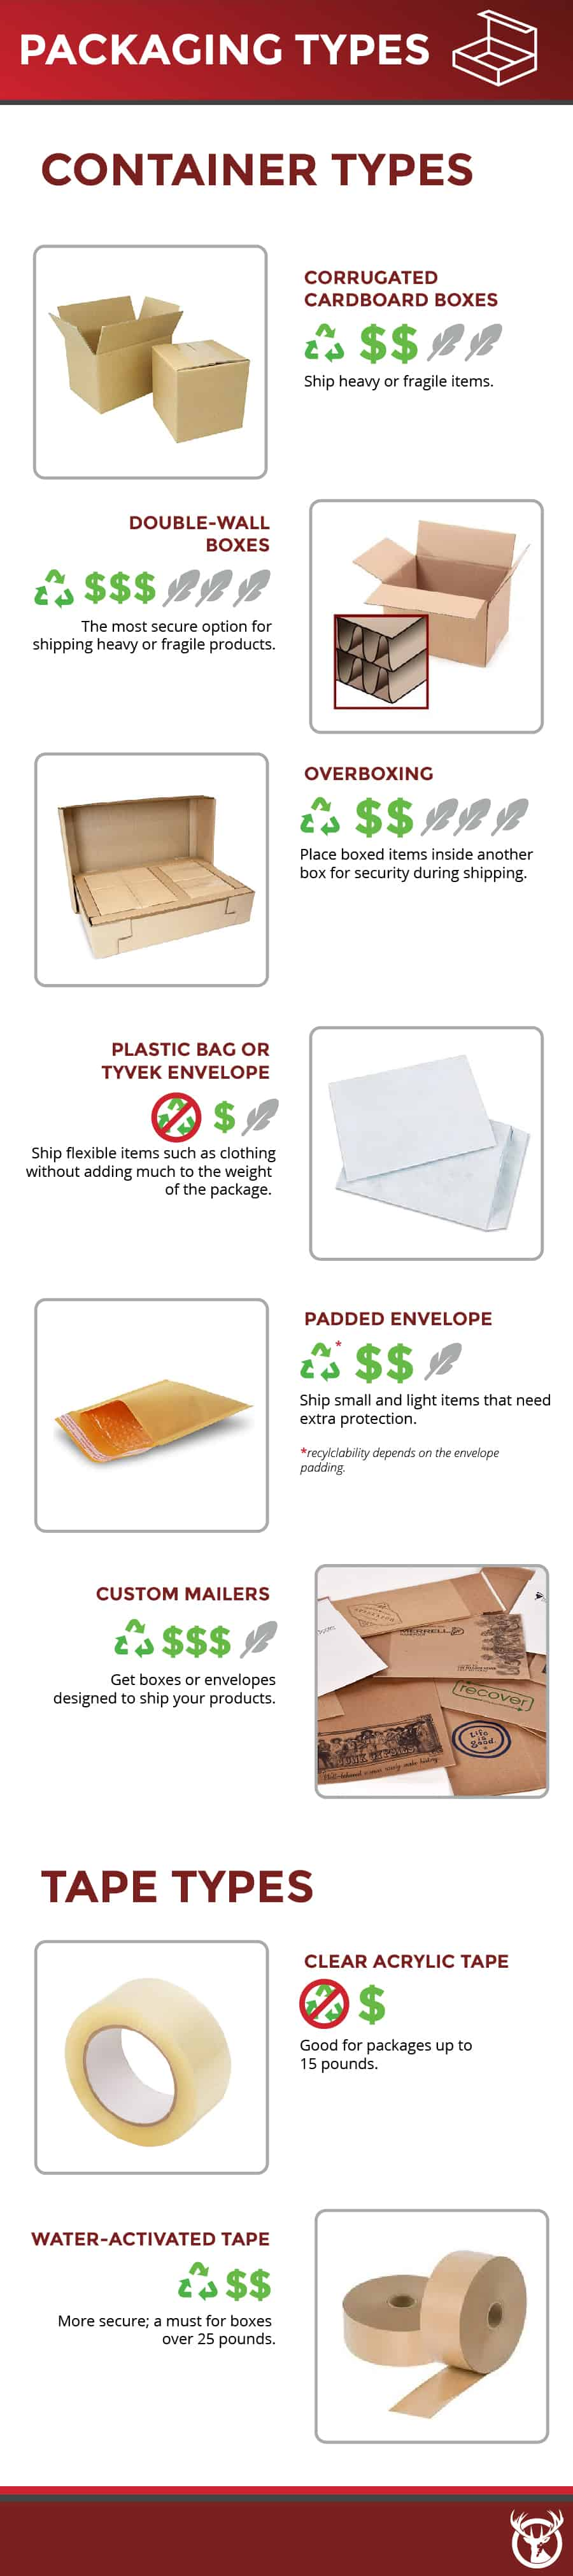 E-Commerce Packaging and Ecommerce Guide